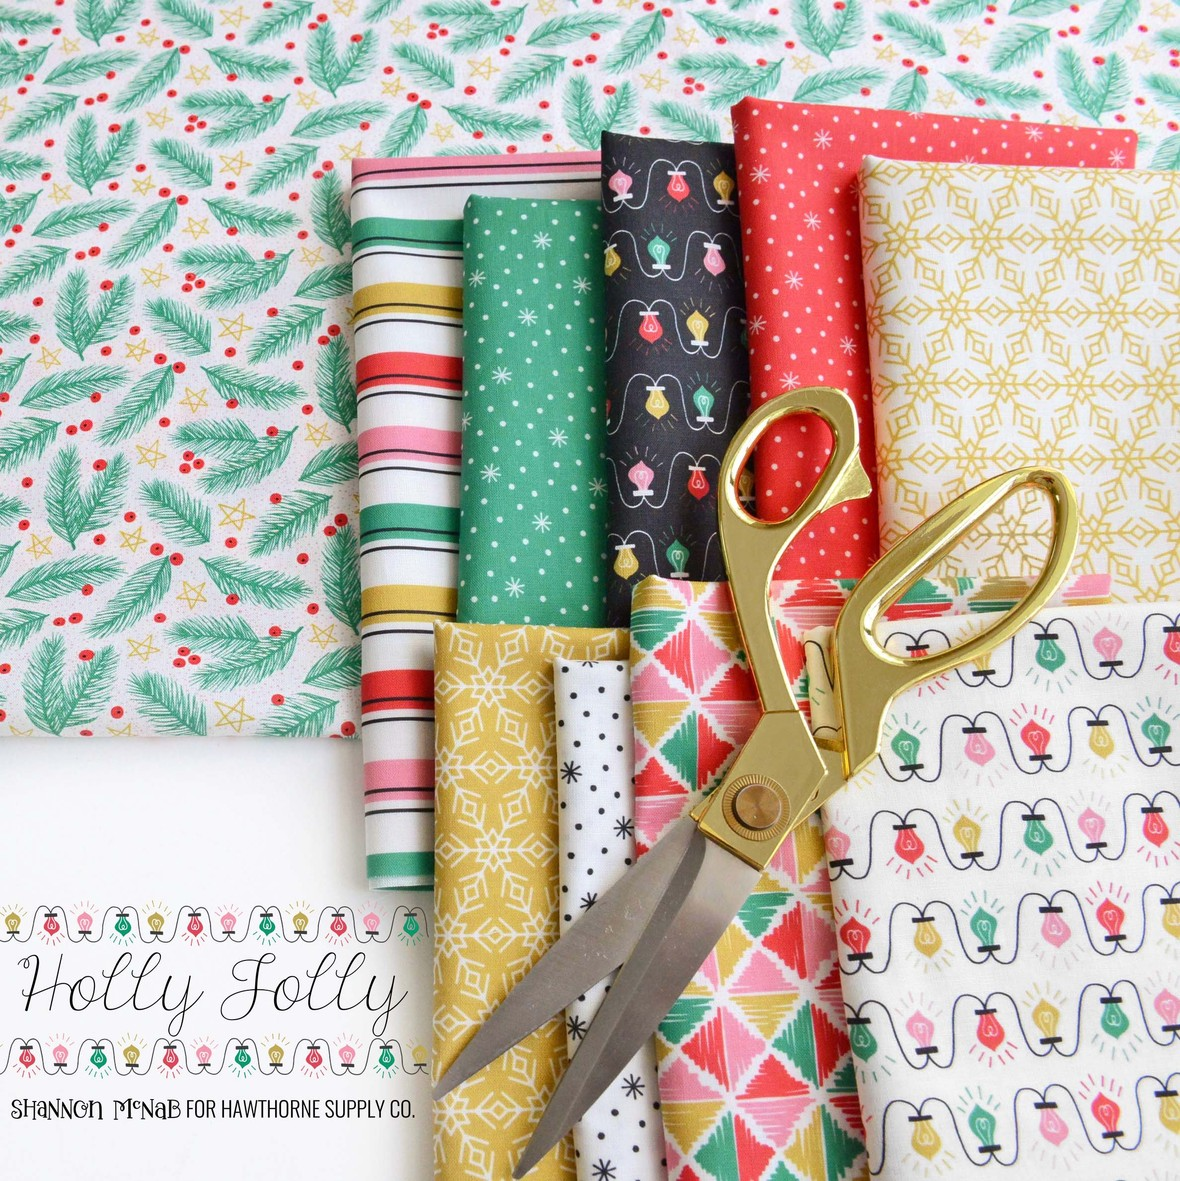 Chistmas Holly Jolly Fabric Poster Shannon McNaab for Hawthorne Supply Co